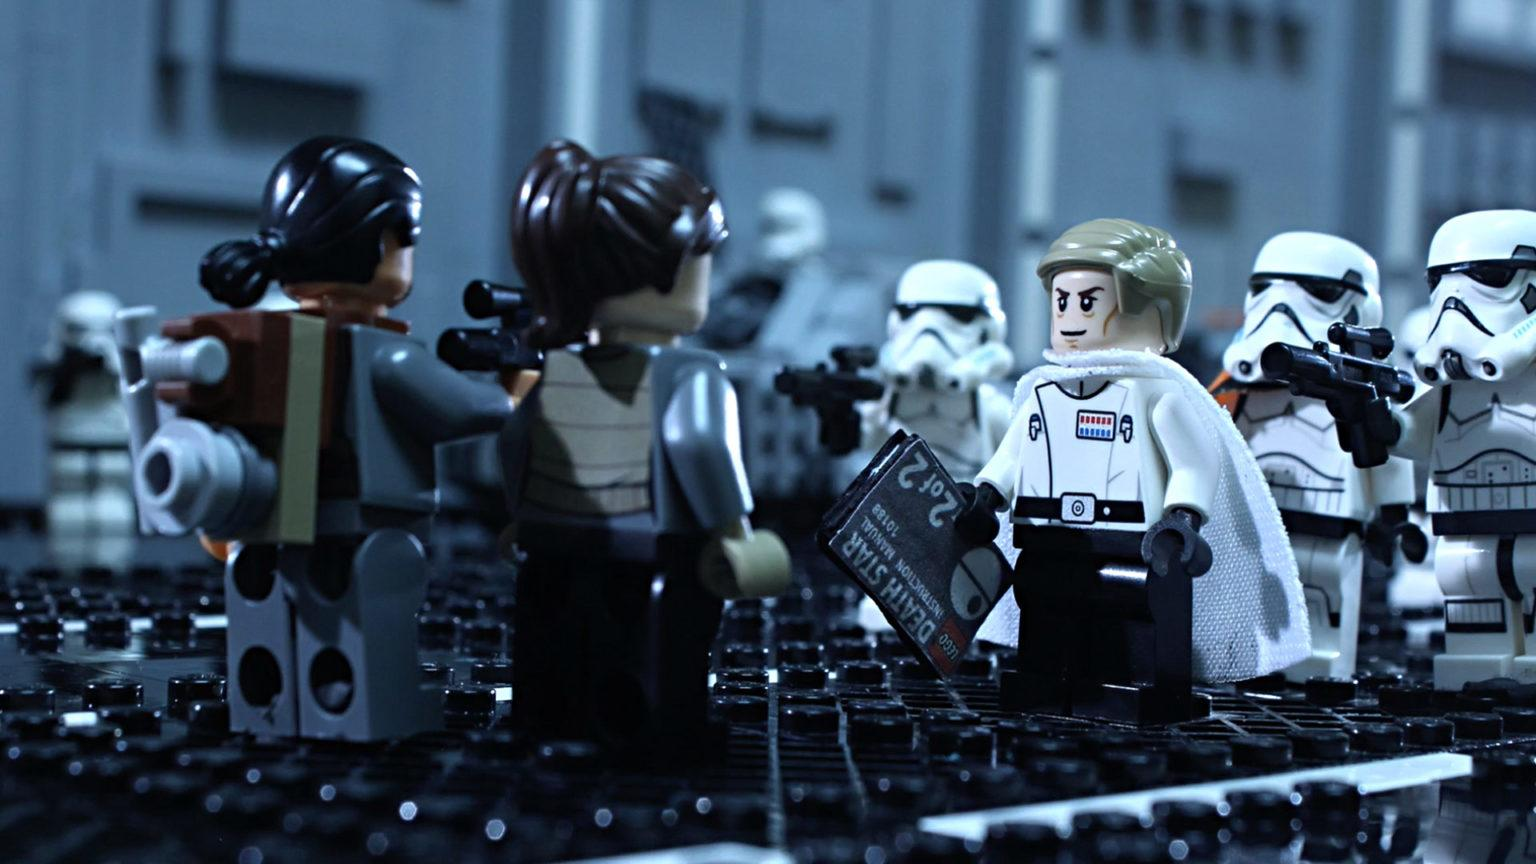 Watch Star Wars Go Rogue A Series Of Clever Shorts Filmed With